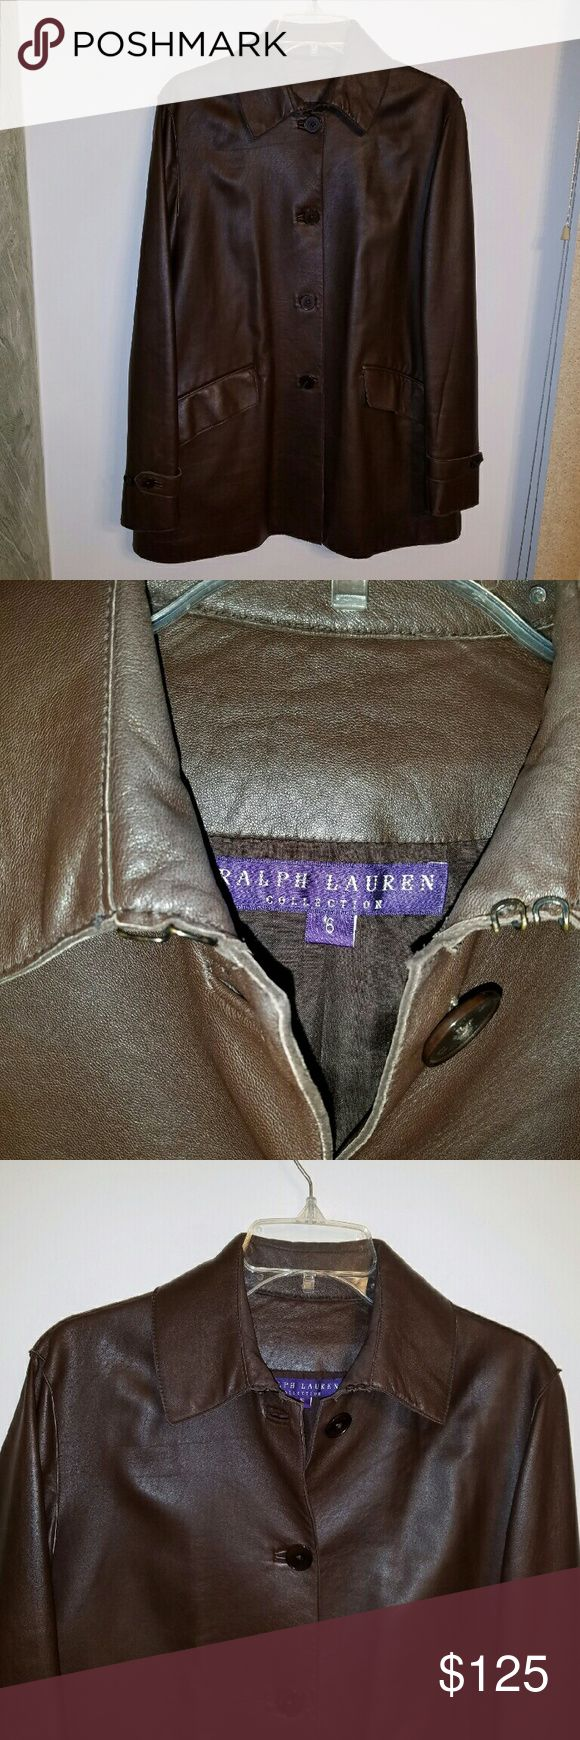 Ralph Lauren Purple Label ladies leather jacket Ralph Lauren Purple Label Collection leather lambskin jacket, flattering length, signature engraved buttons, beautiful condition, Size 6 / Small Ralph Lauren Purple Label Jackets & Coats Trench Coats